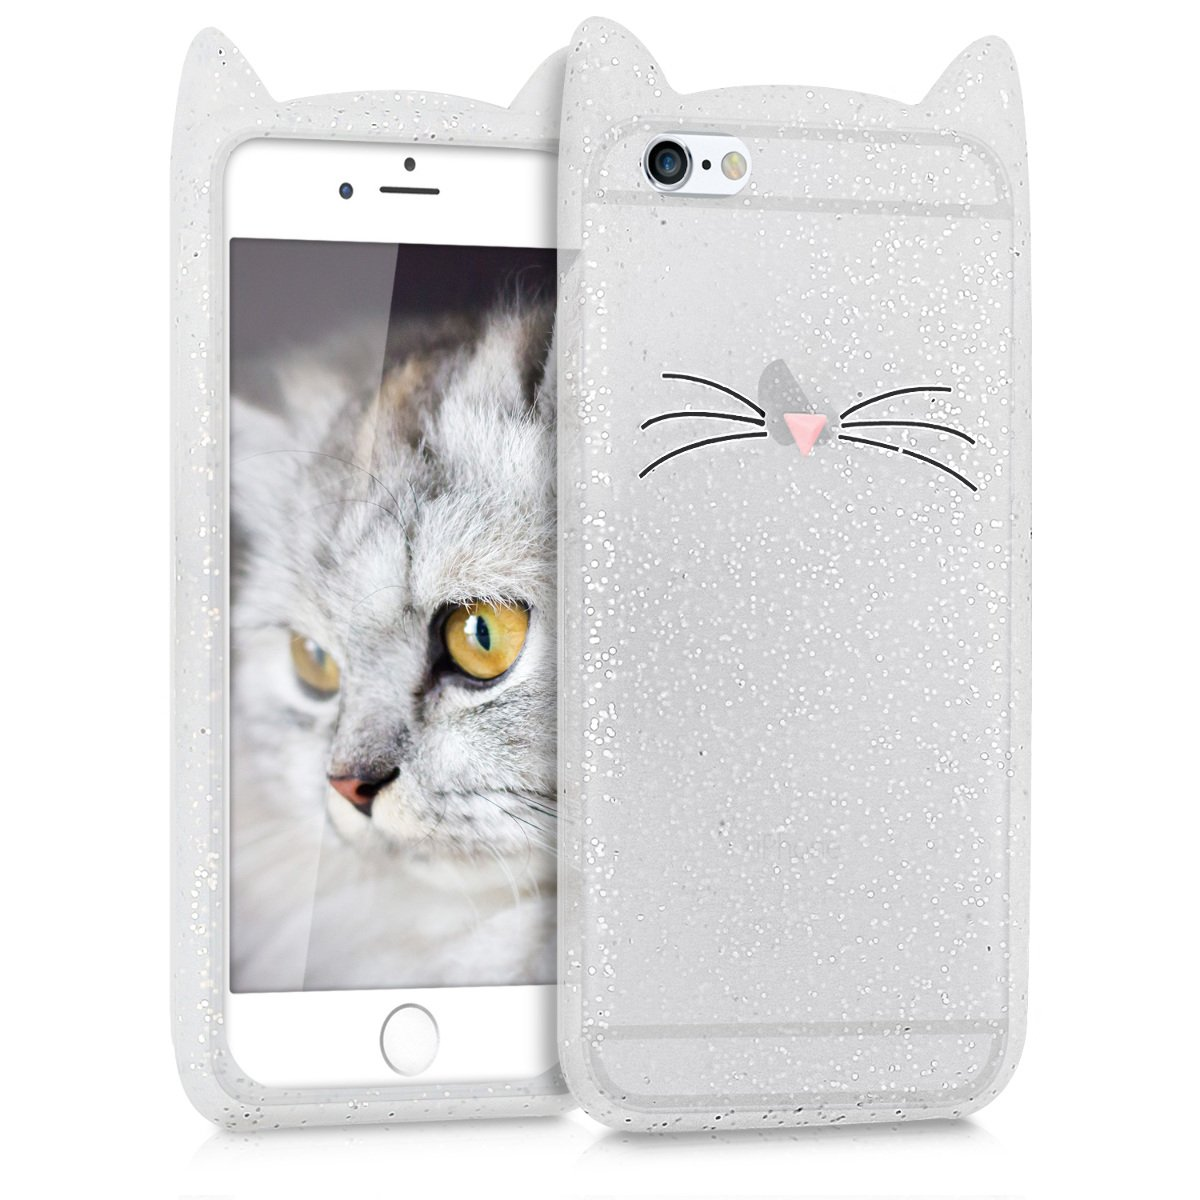 kwmobile Cat Silicone Case for Apple iPhone 6 / 6S - Soft Silicone Gel Protective Cover with Cute Design KW-Commerce 42763.01_m000242